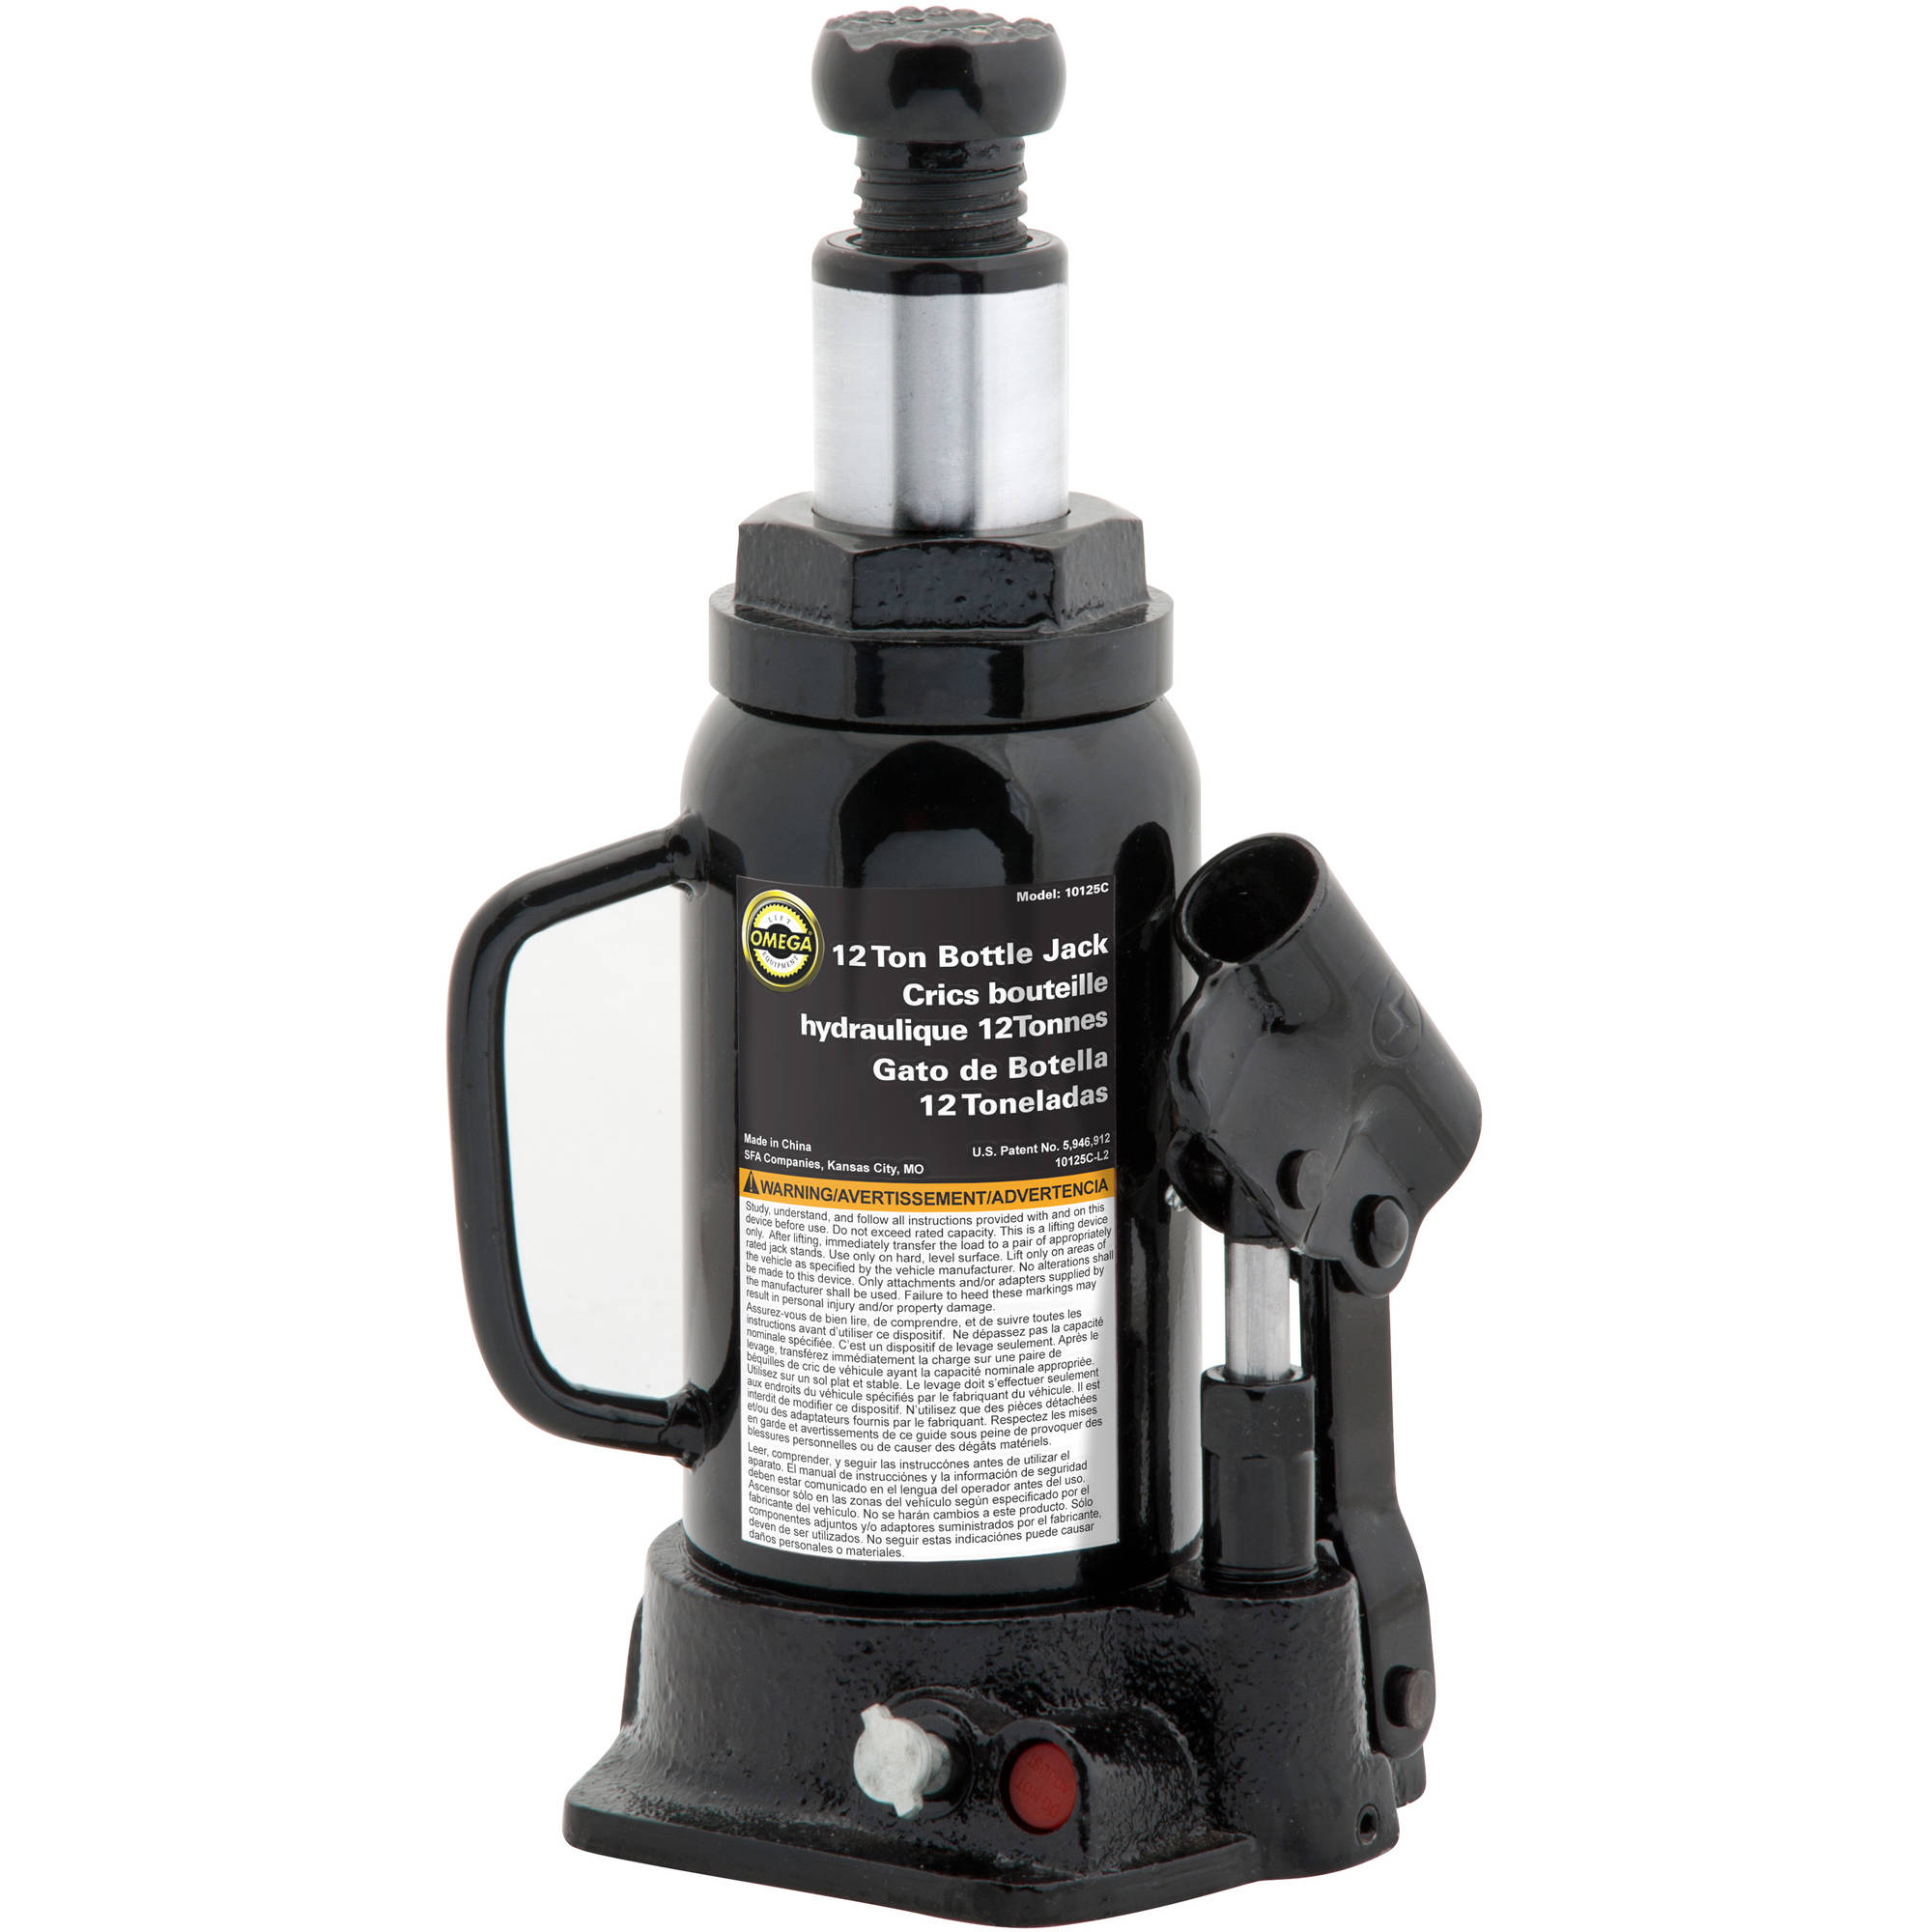 Omega 10125B Black Hydraulic Bottle Jack, 12 Ton Capacity